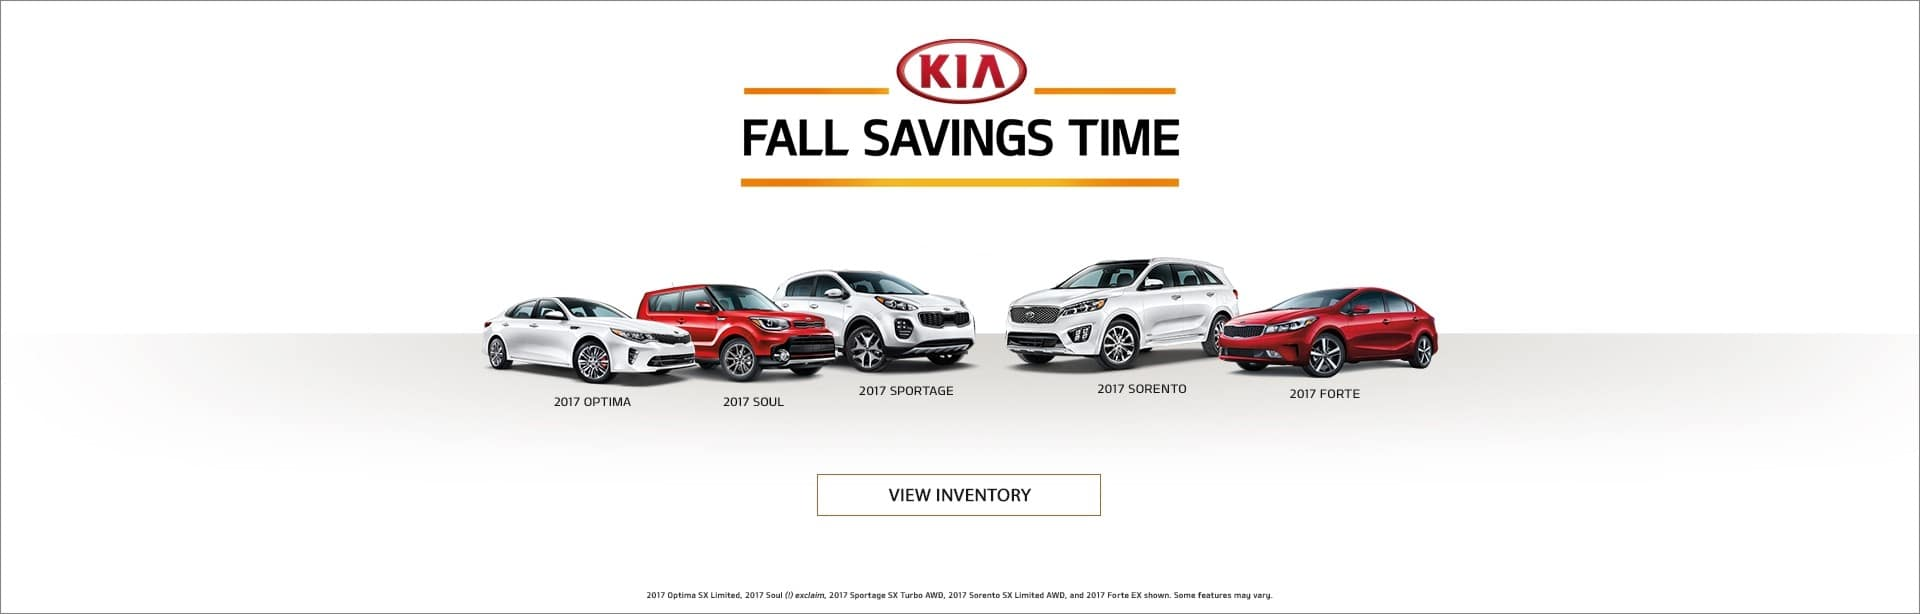 Our kia models